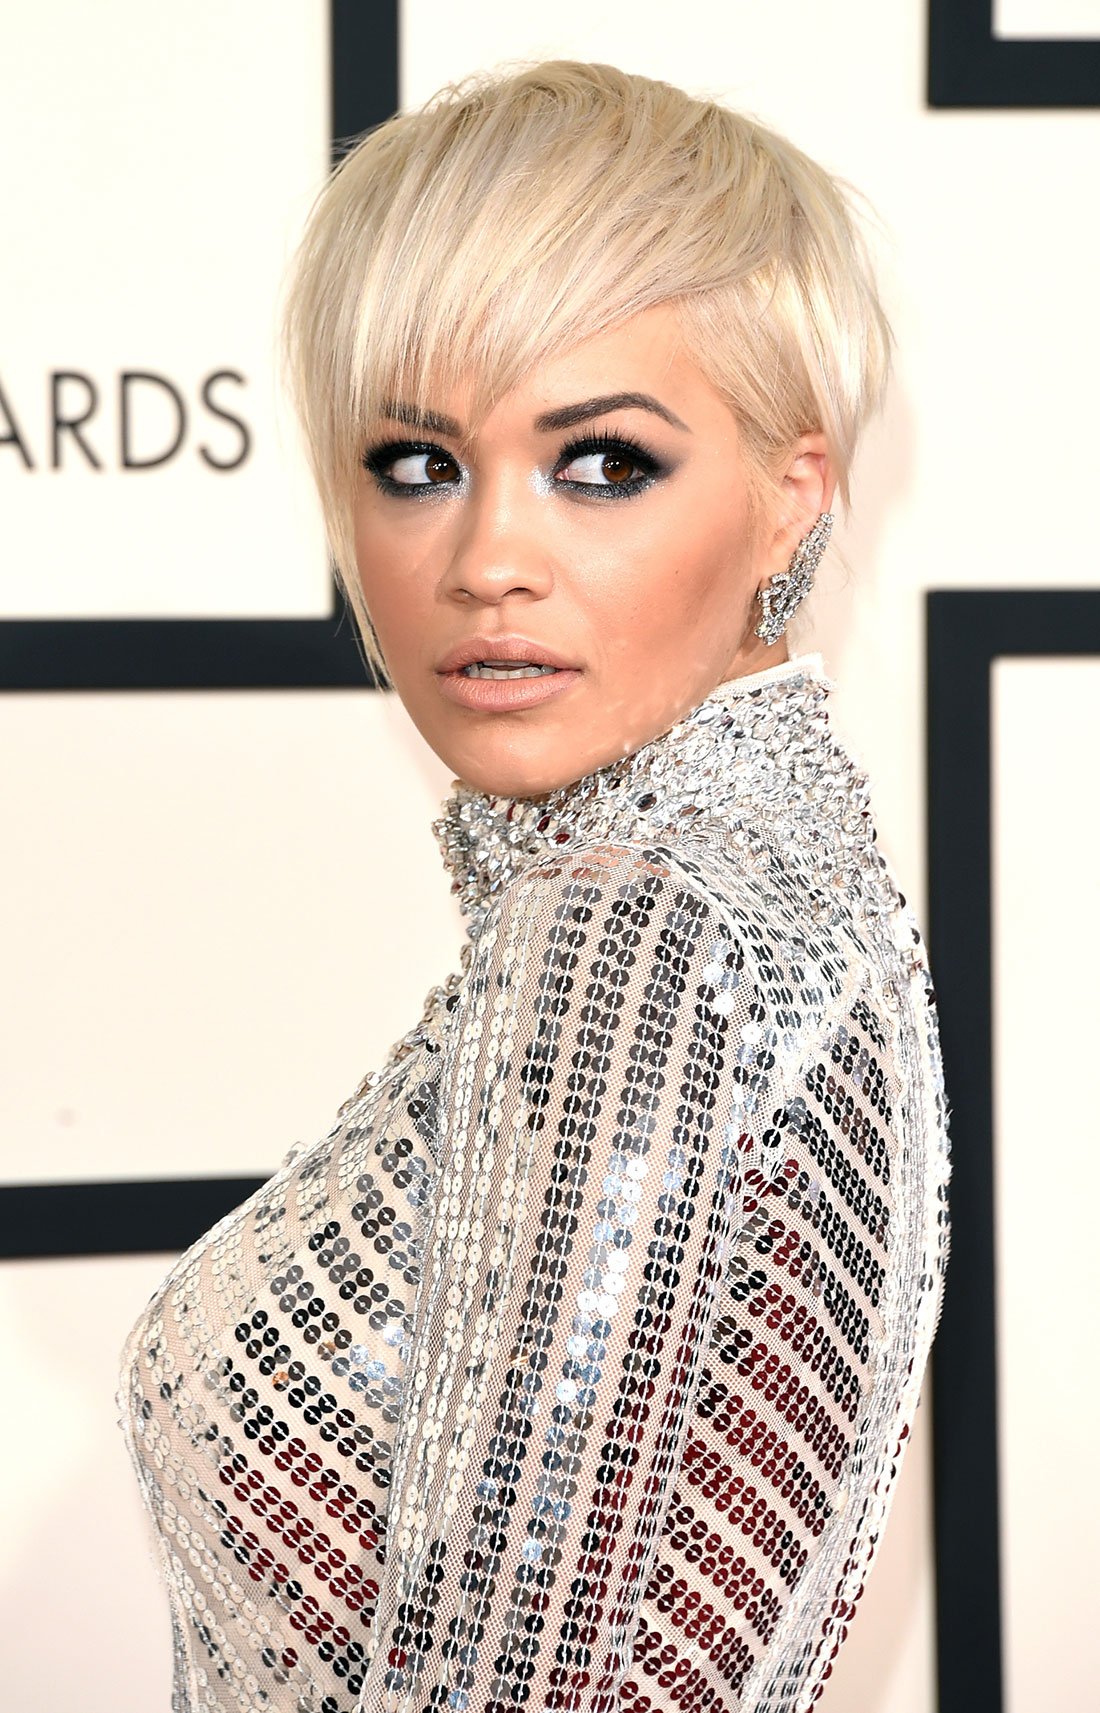 Rita Ora blonde pixie hairucts